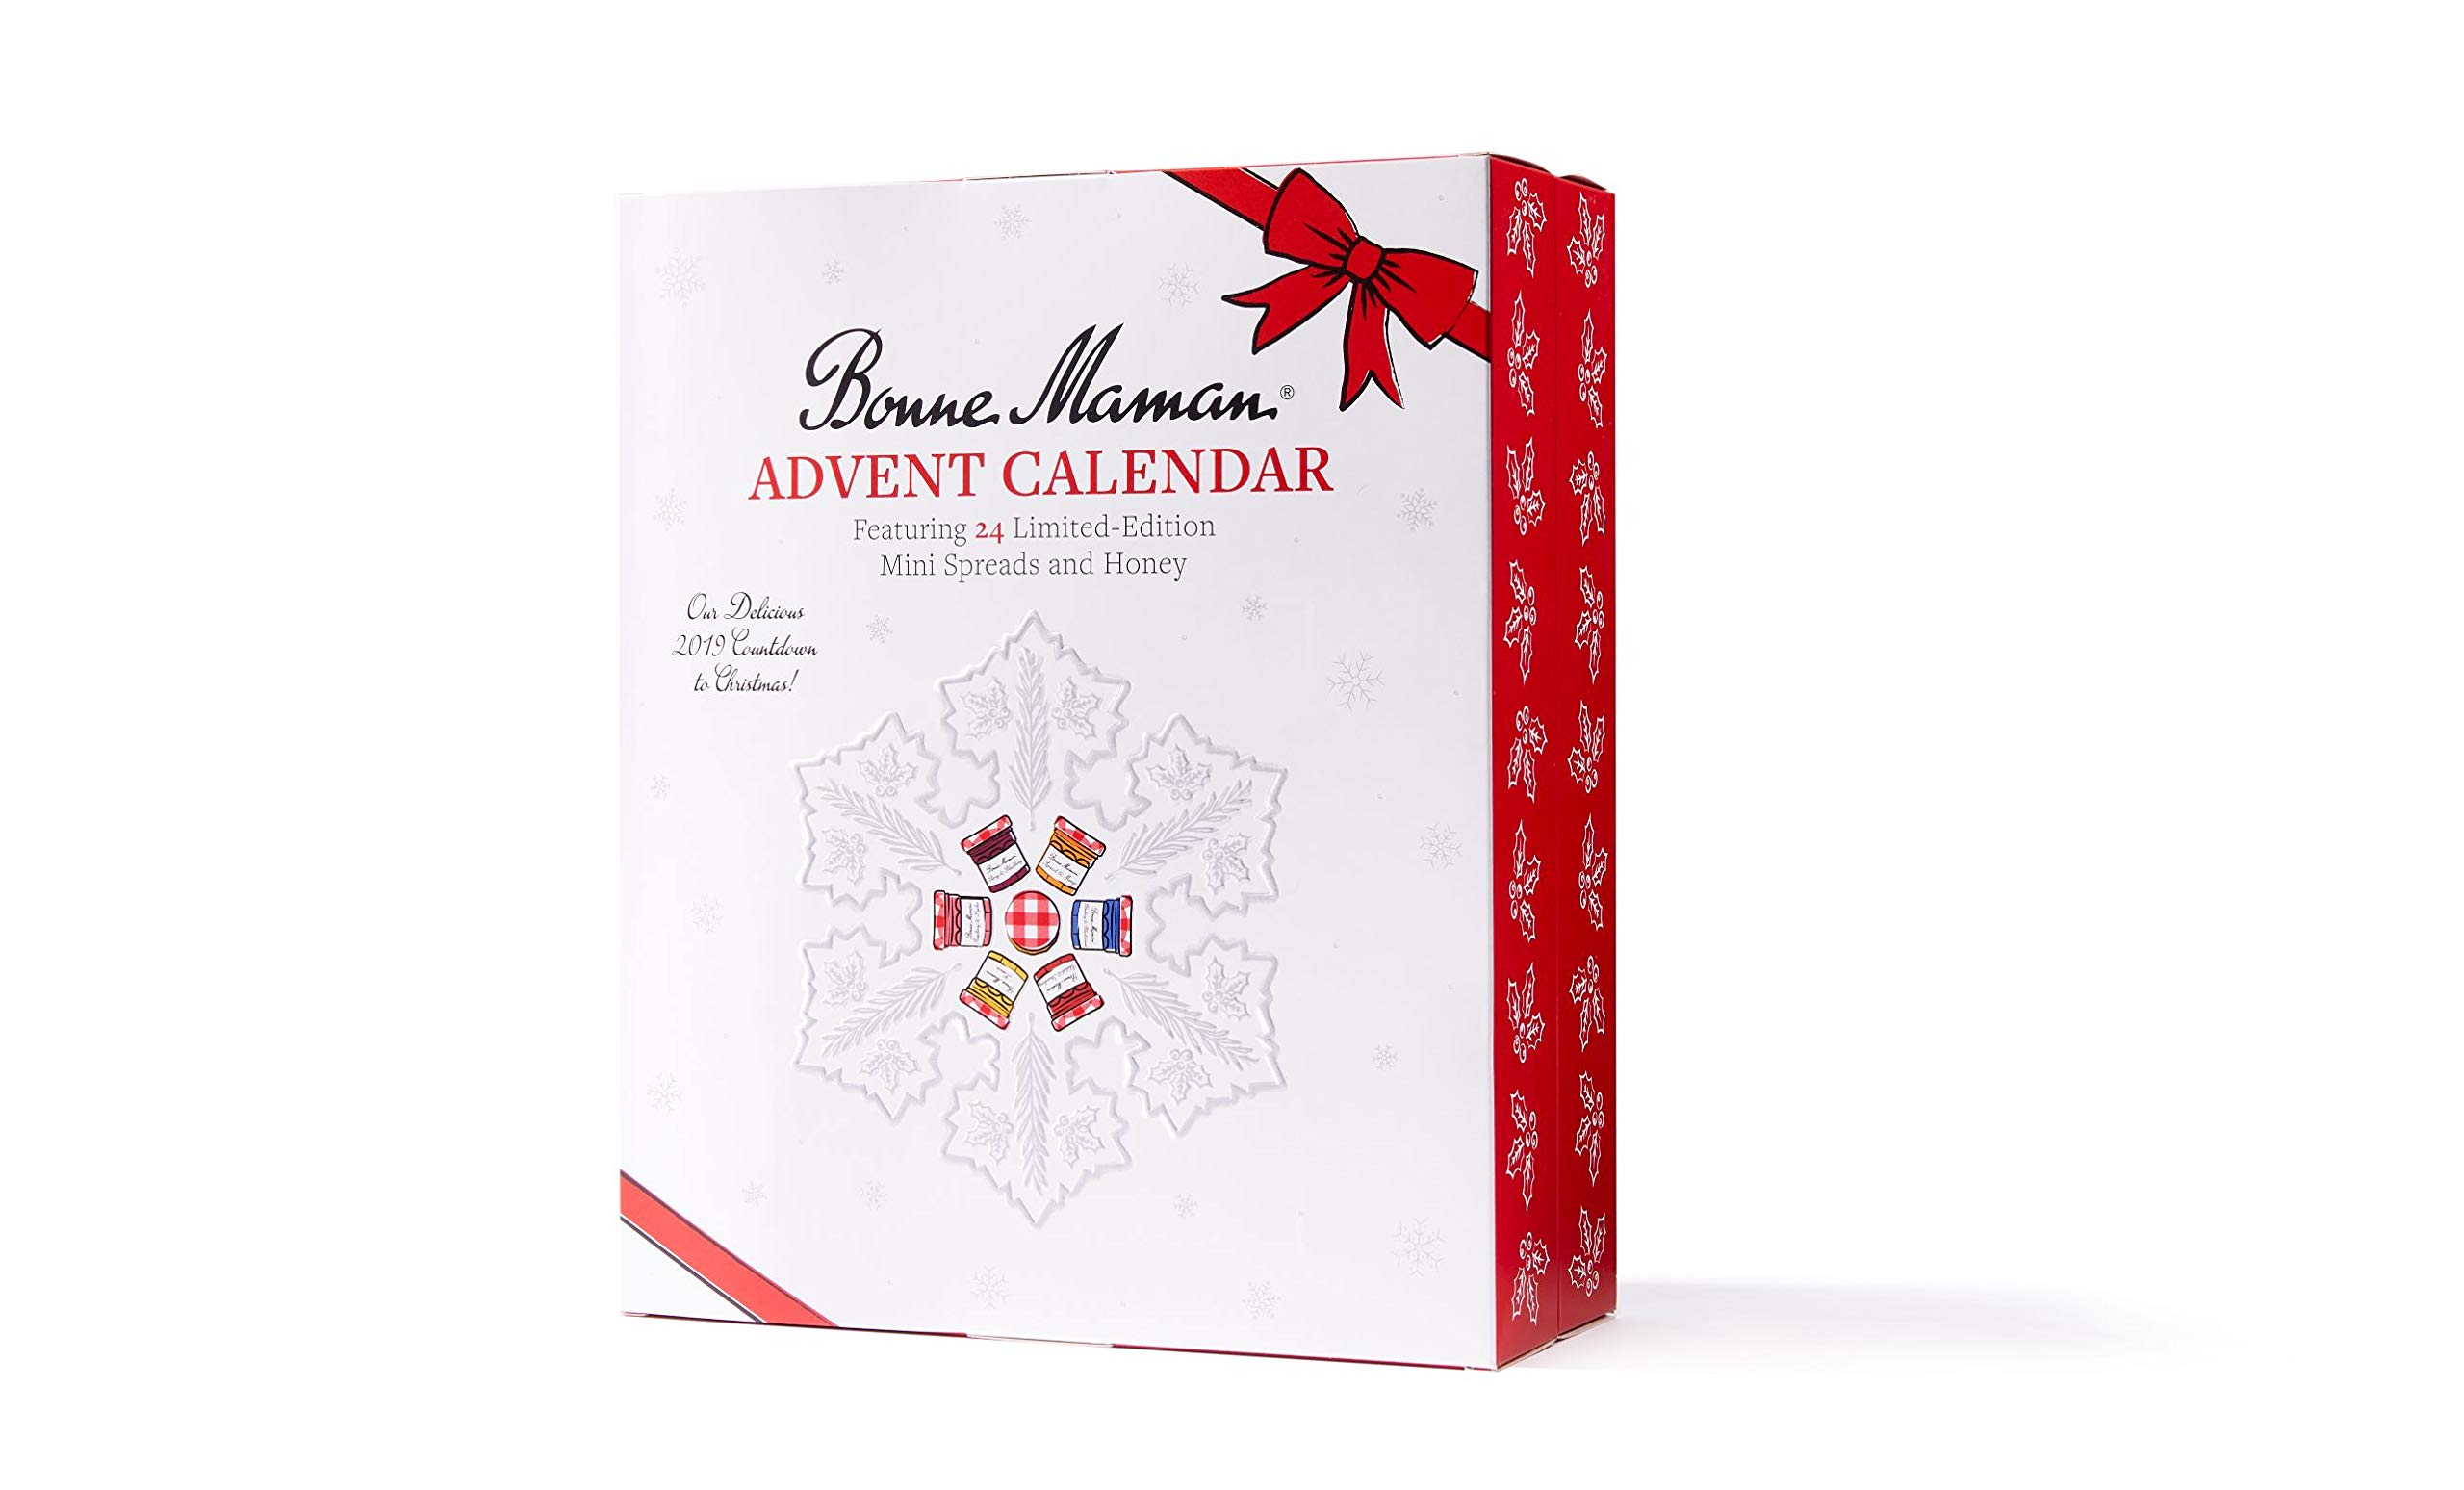 Bonne Maman 2019 LIMITED EDITION Advent Calendar, with 24 jars by Bonne Maman